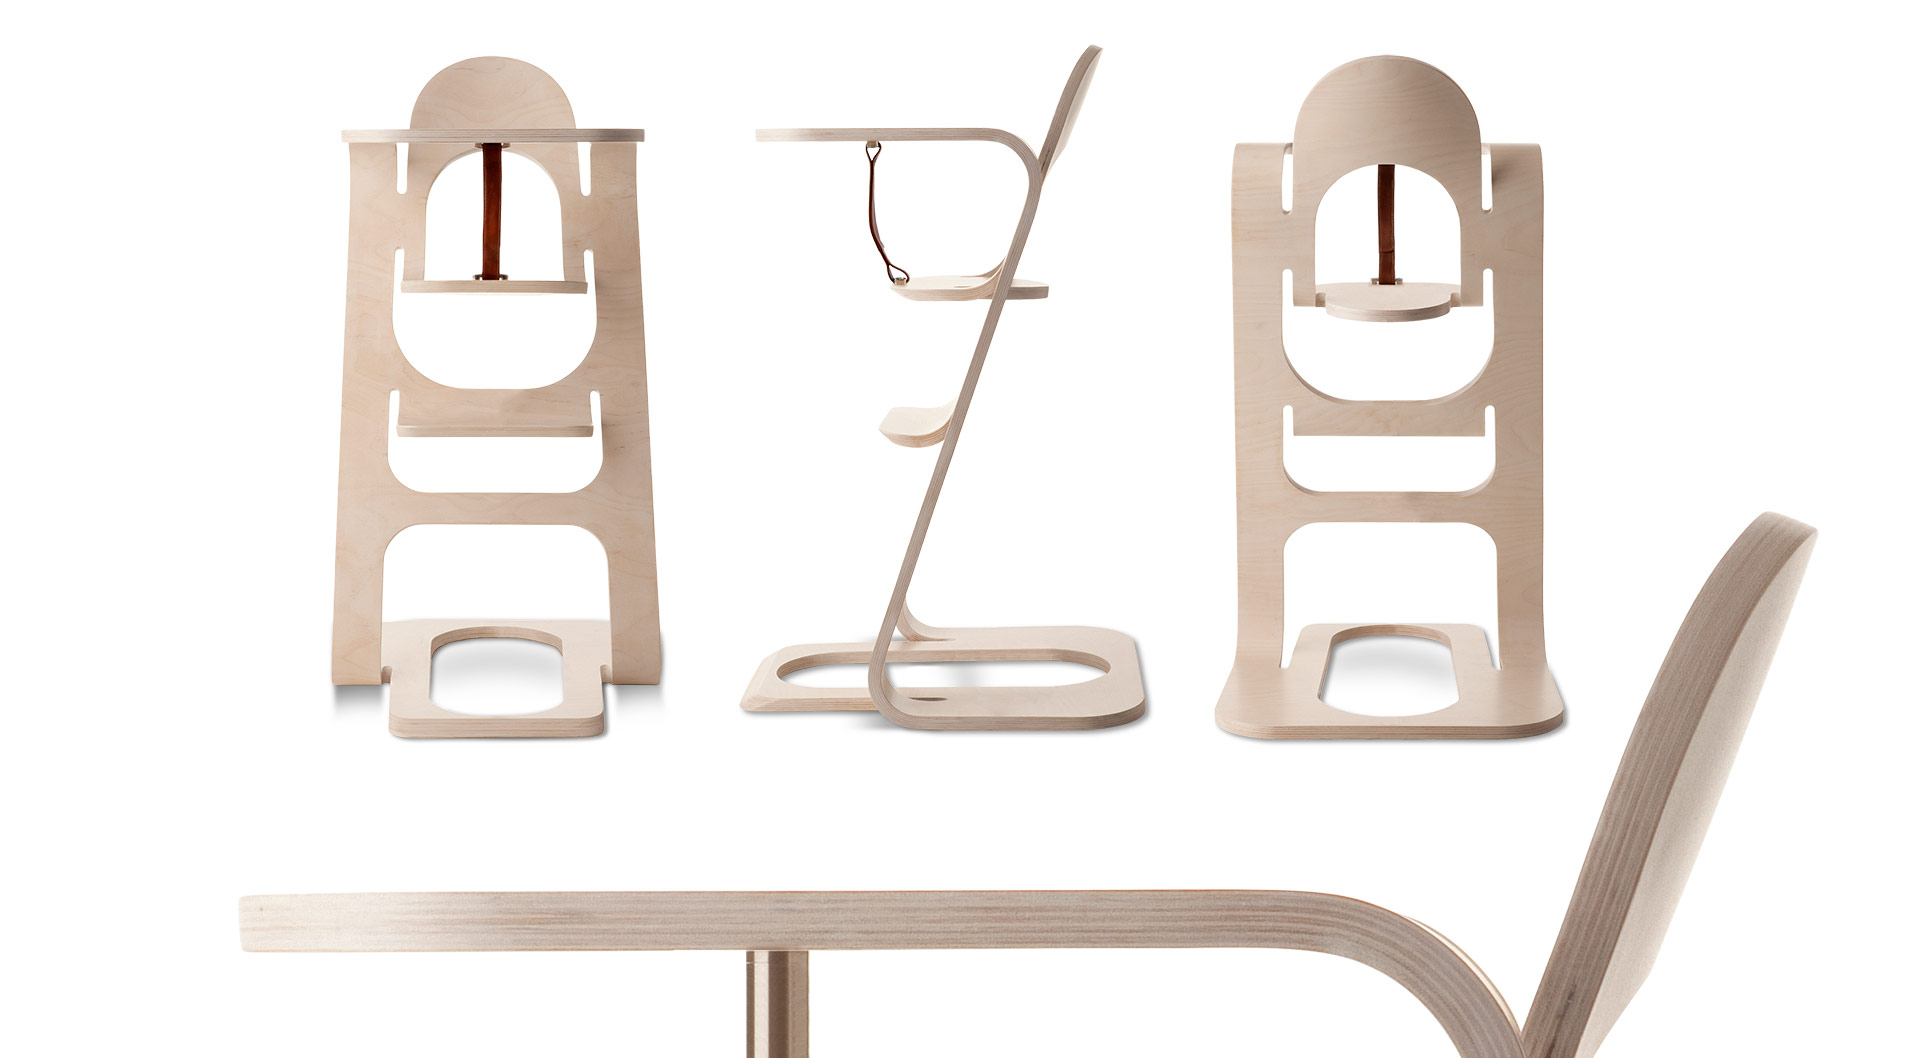 joachim-karelse-dutch-design-high-chair